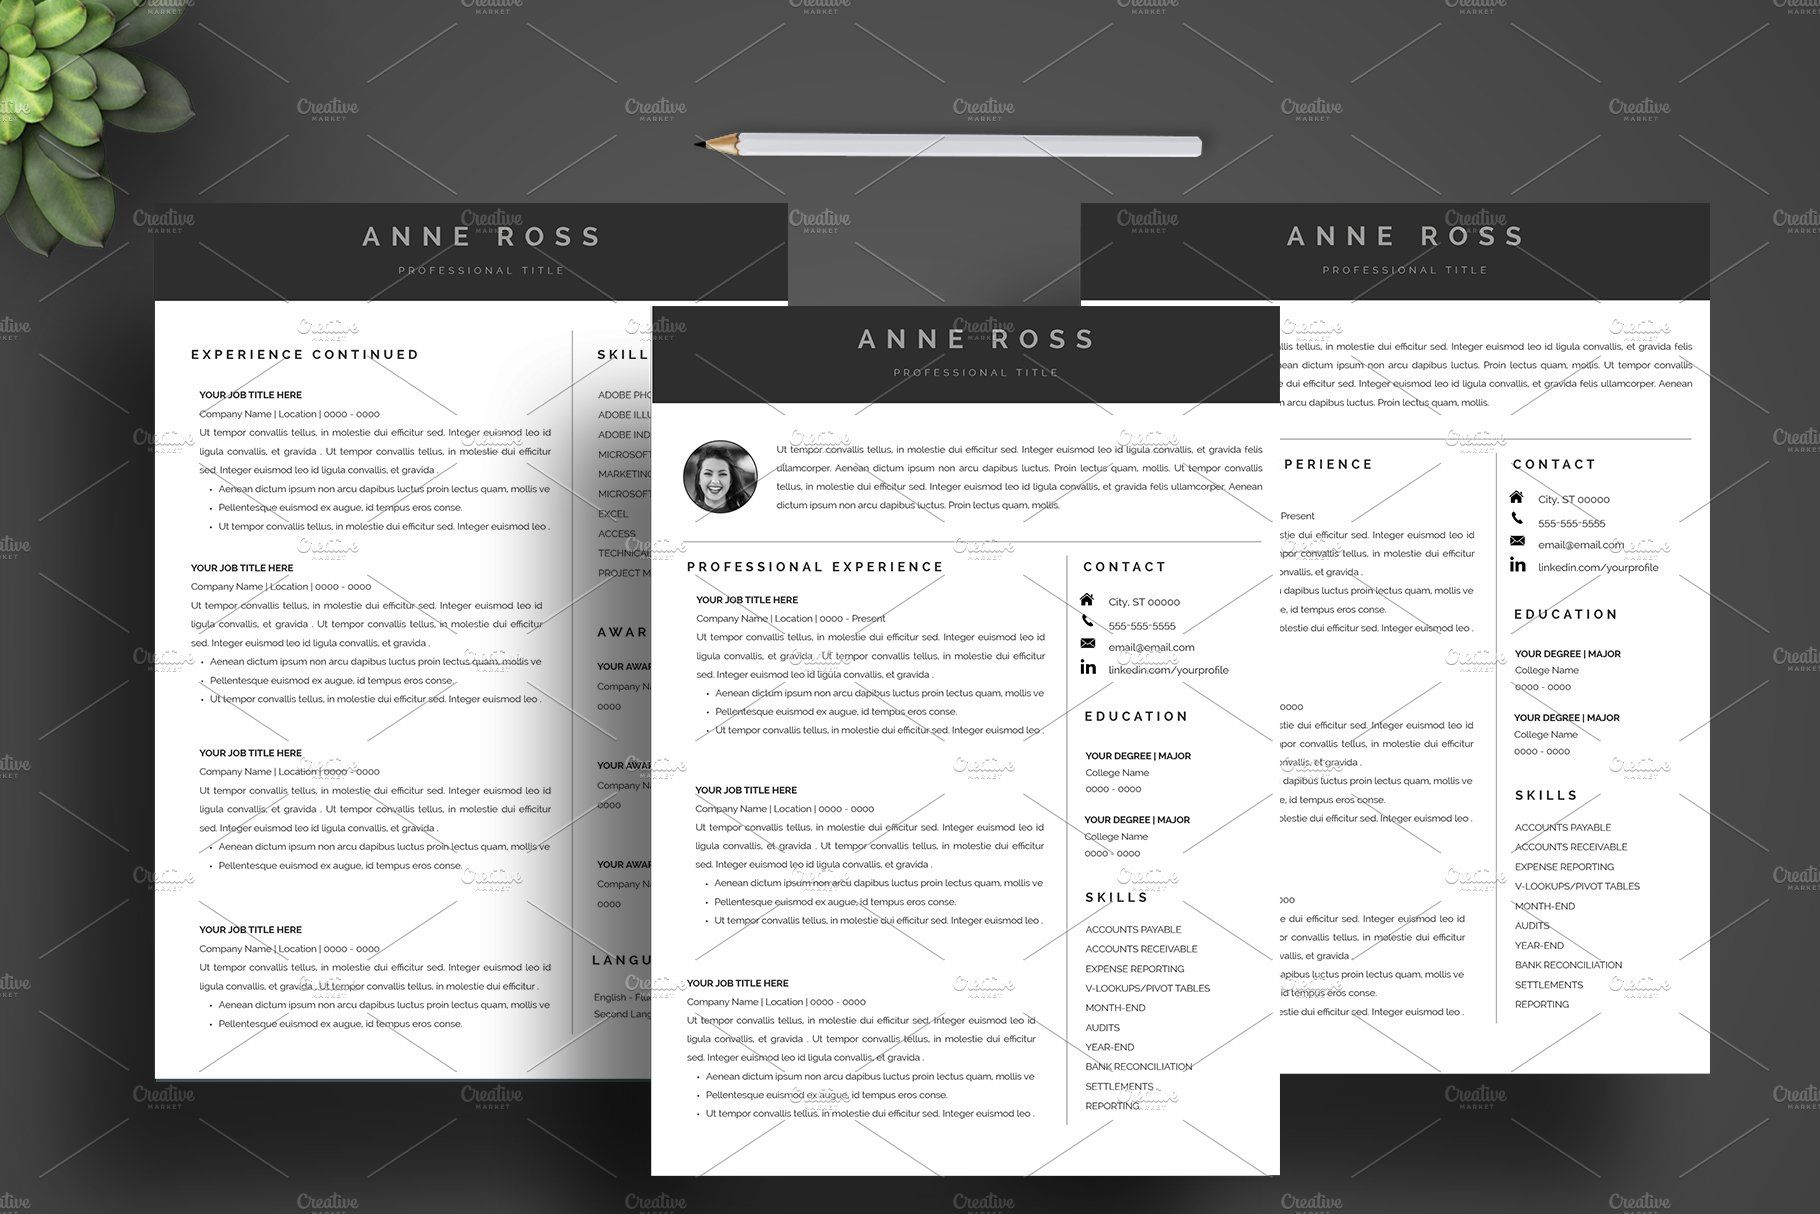 Resume Cv Template Cover Letter By Top Level Resumes On Creativemarket Graphicdesign Art Design Illustra Cv Template Resume Cv Cover Letter For Resume